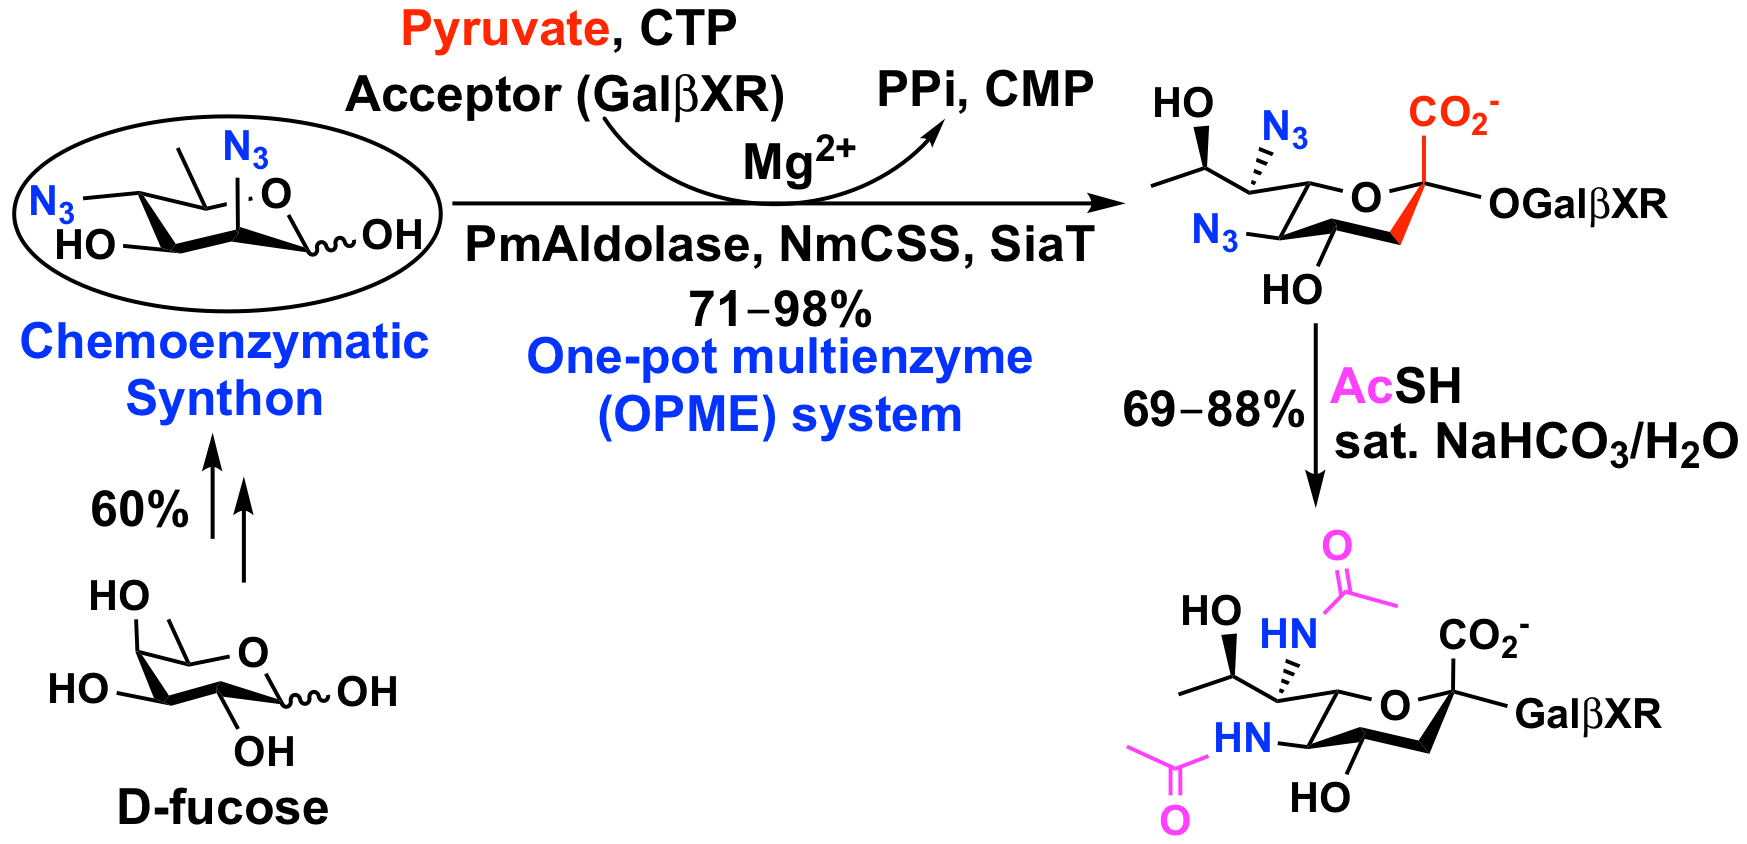 The top left shows a chemoenzymatic synthon easily accessible by chemical synthesis; it can be readily converted into complex carbohydrate analogs (bottom right) using the multi-enzyme synthetic method.